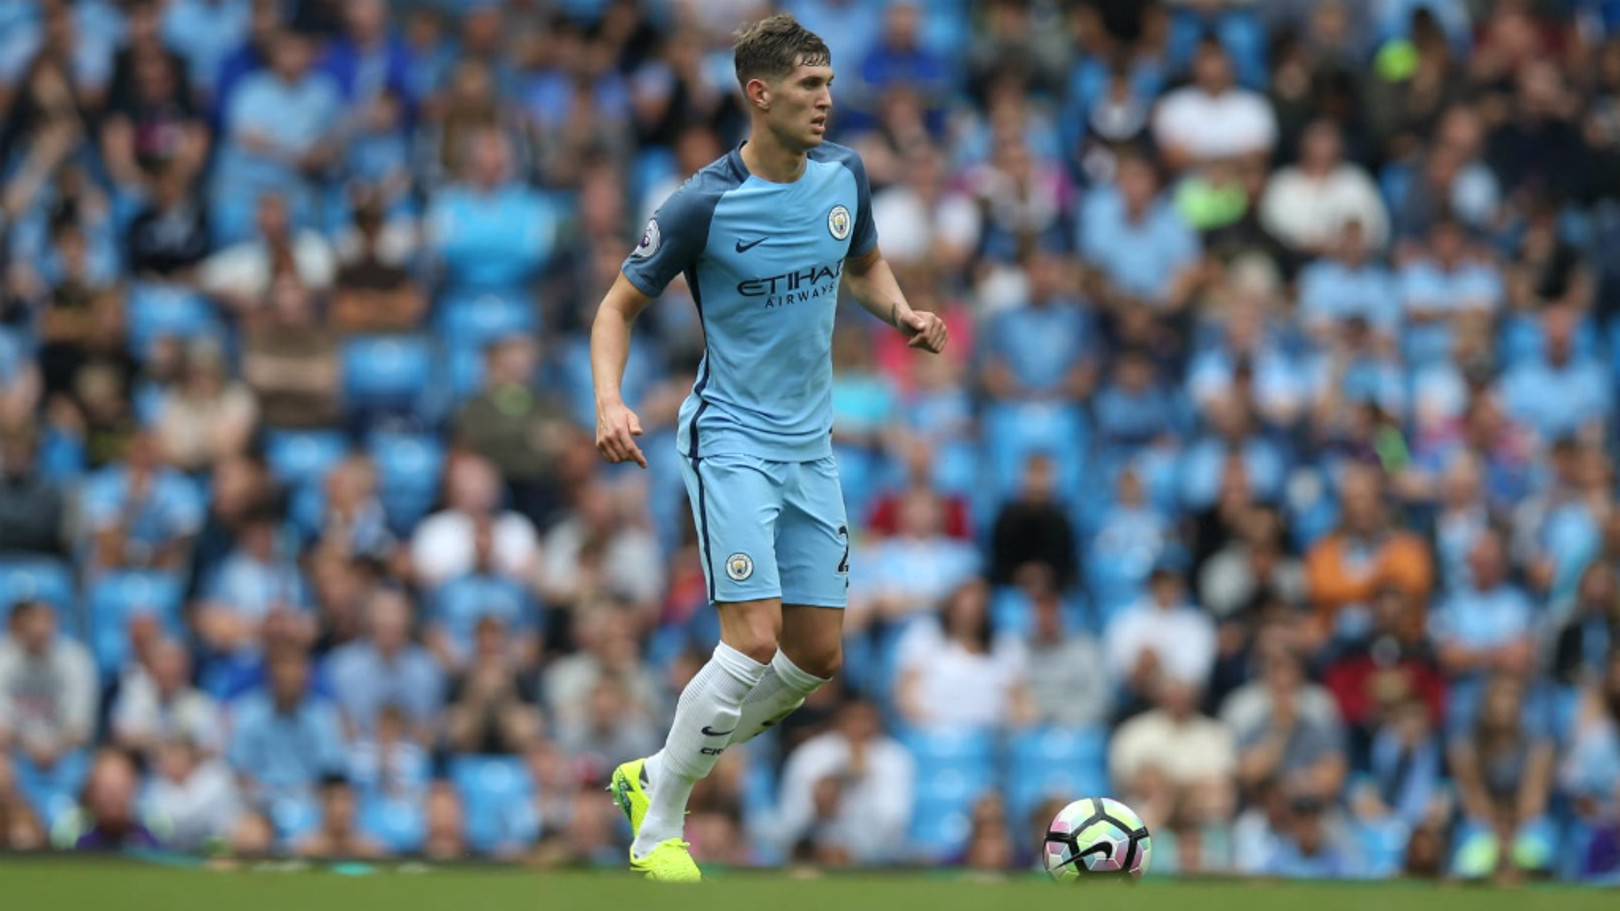 City trio named in England squad